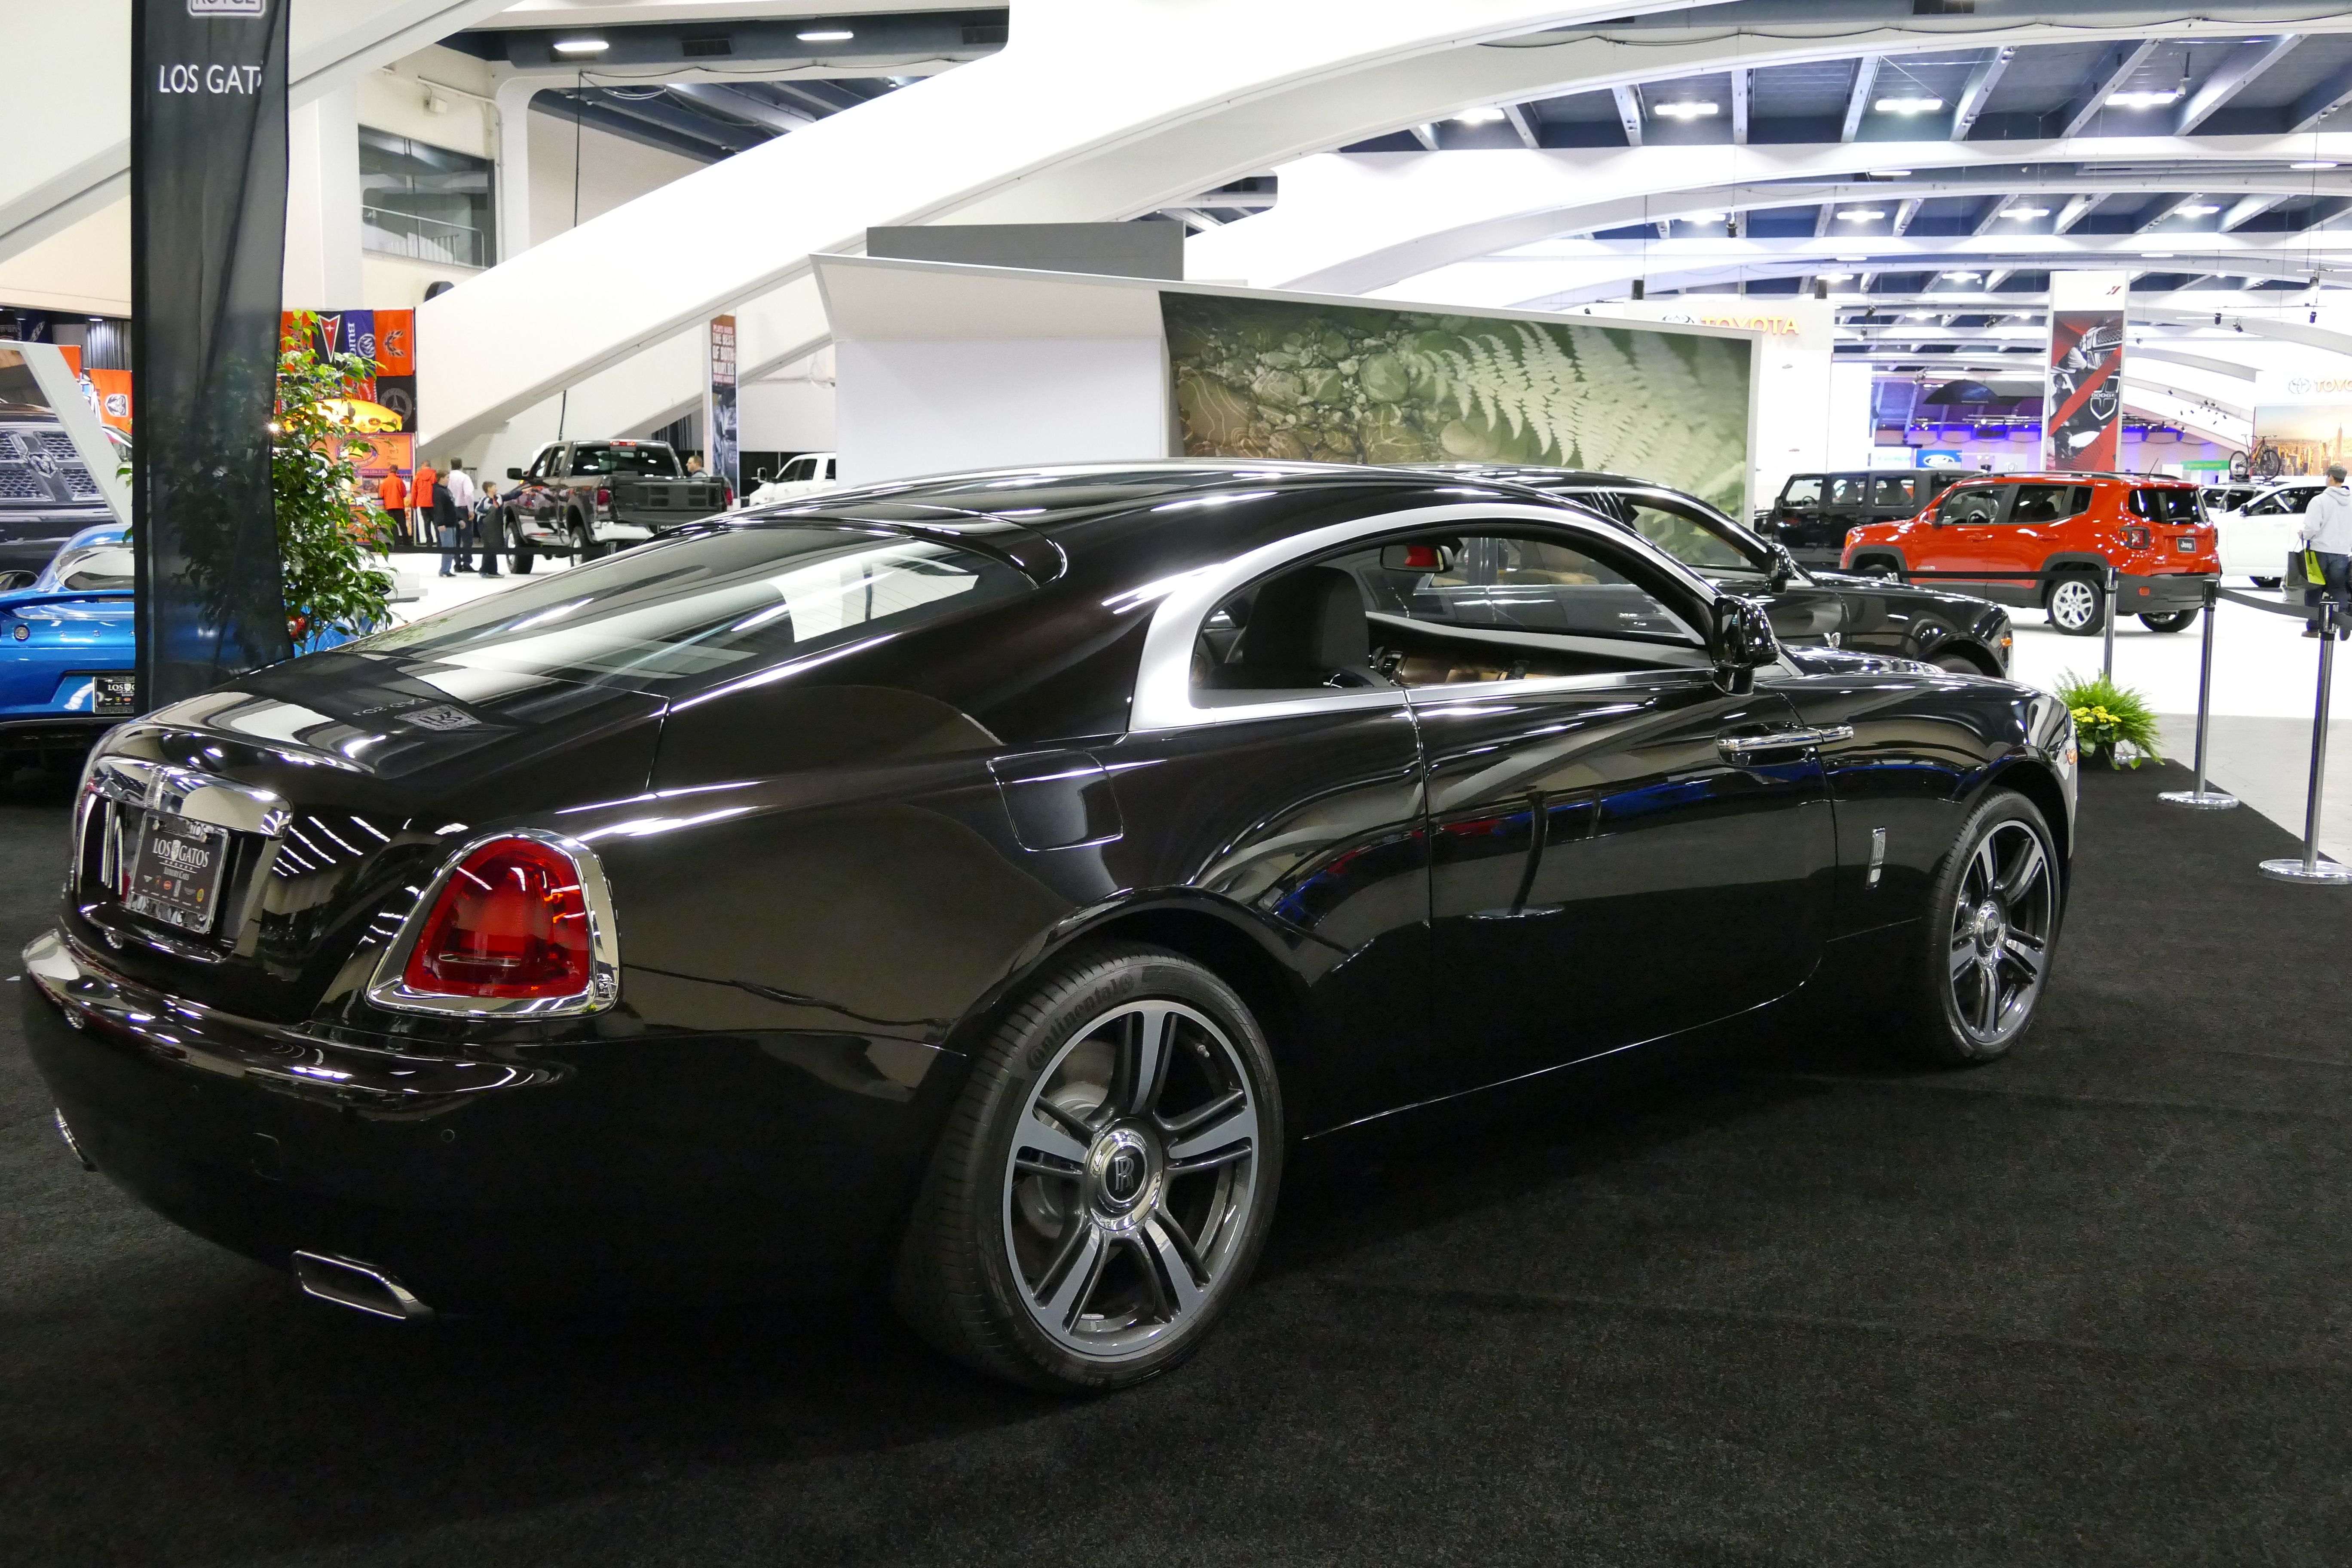 sf auto show last day to see world 39 s most expensive cars bay area hqbay area hq. Black Bedroom Furniture Sets. Home Design Ideas